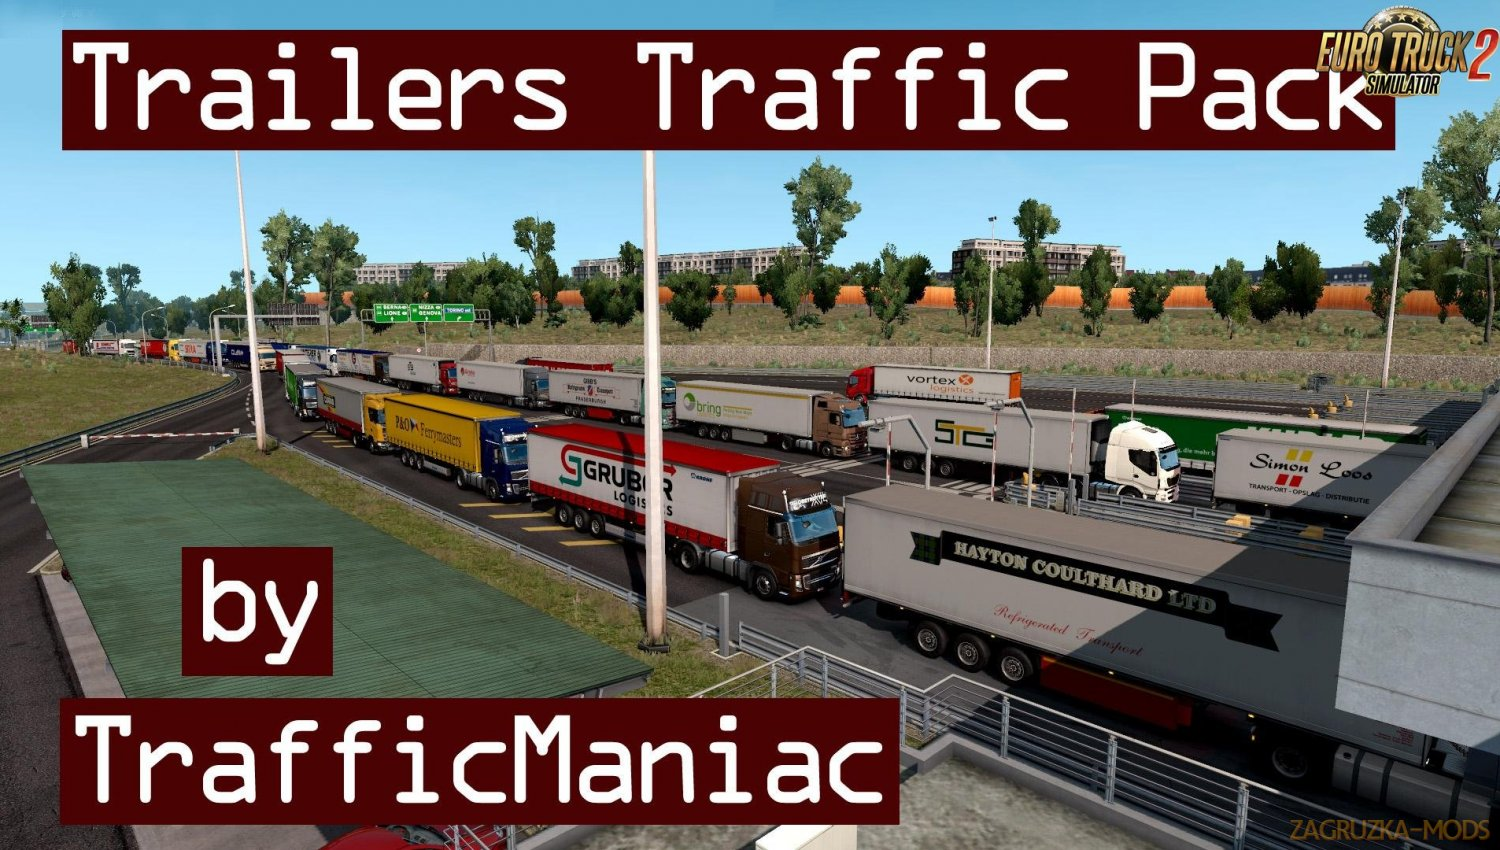 Trailers Traffic Pack v2.0 by TrafficManiac